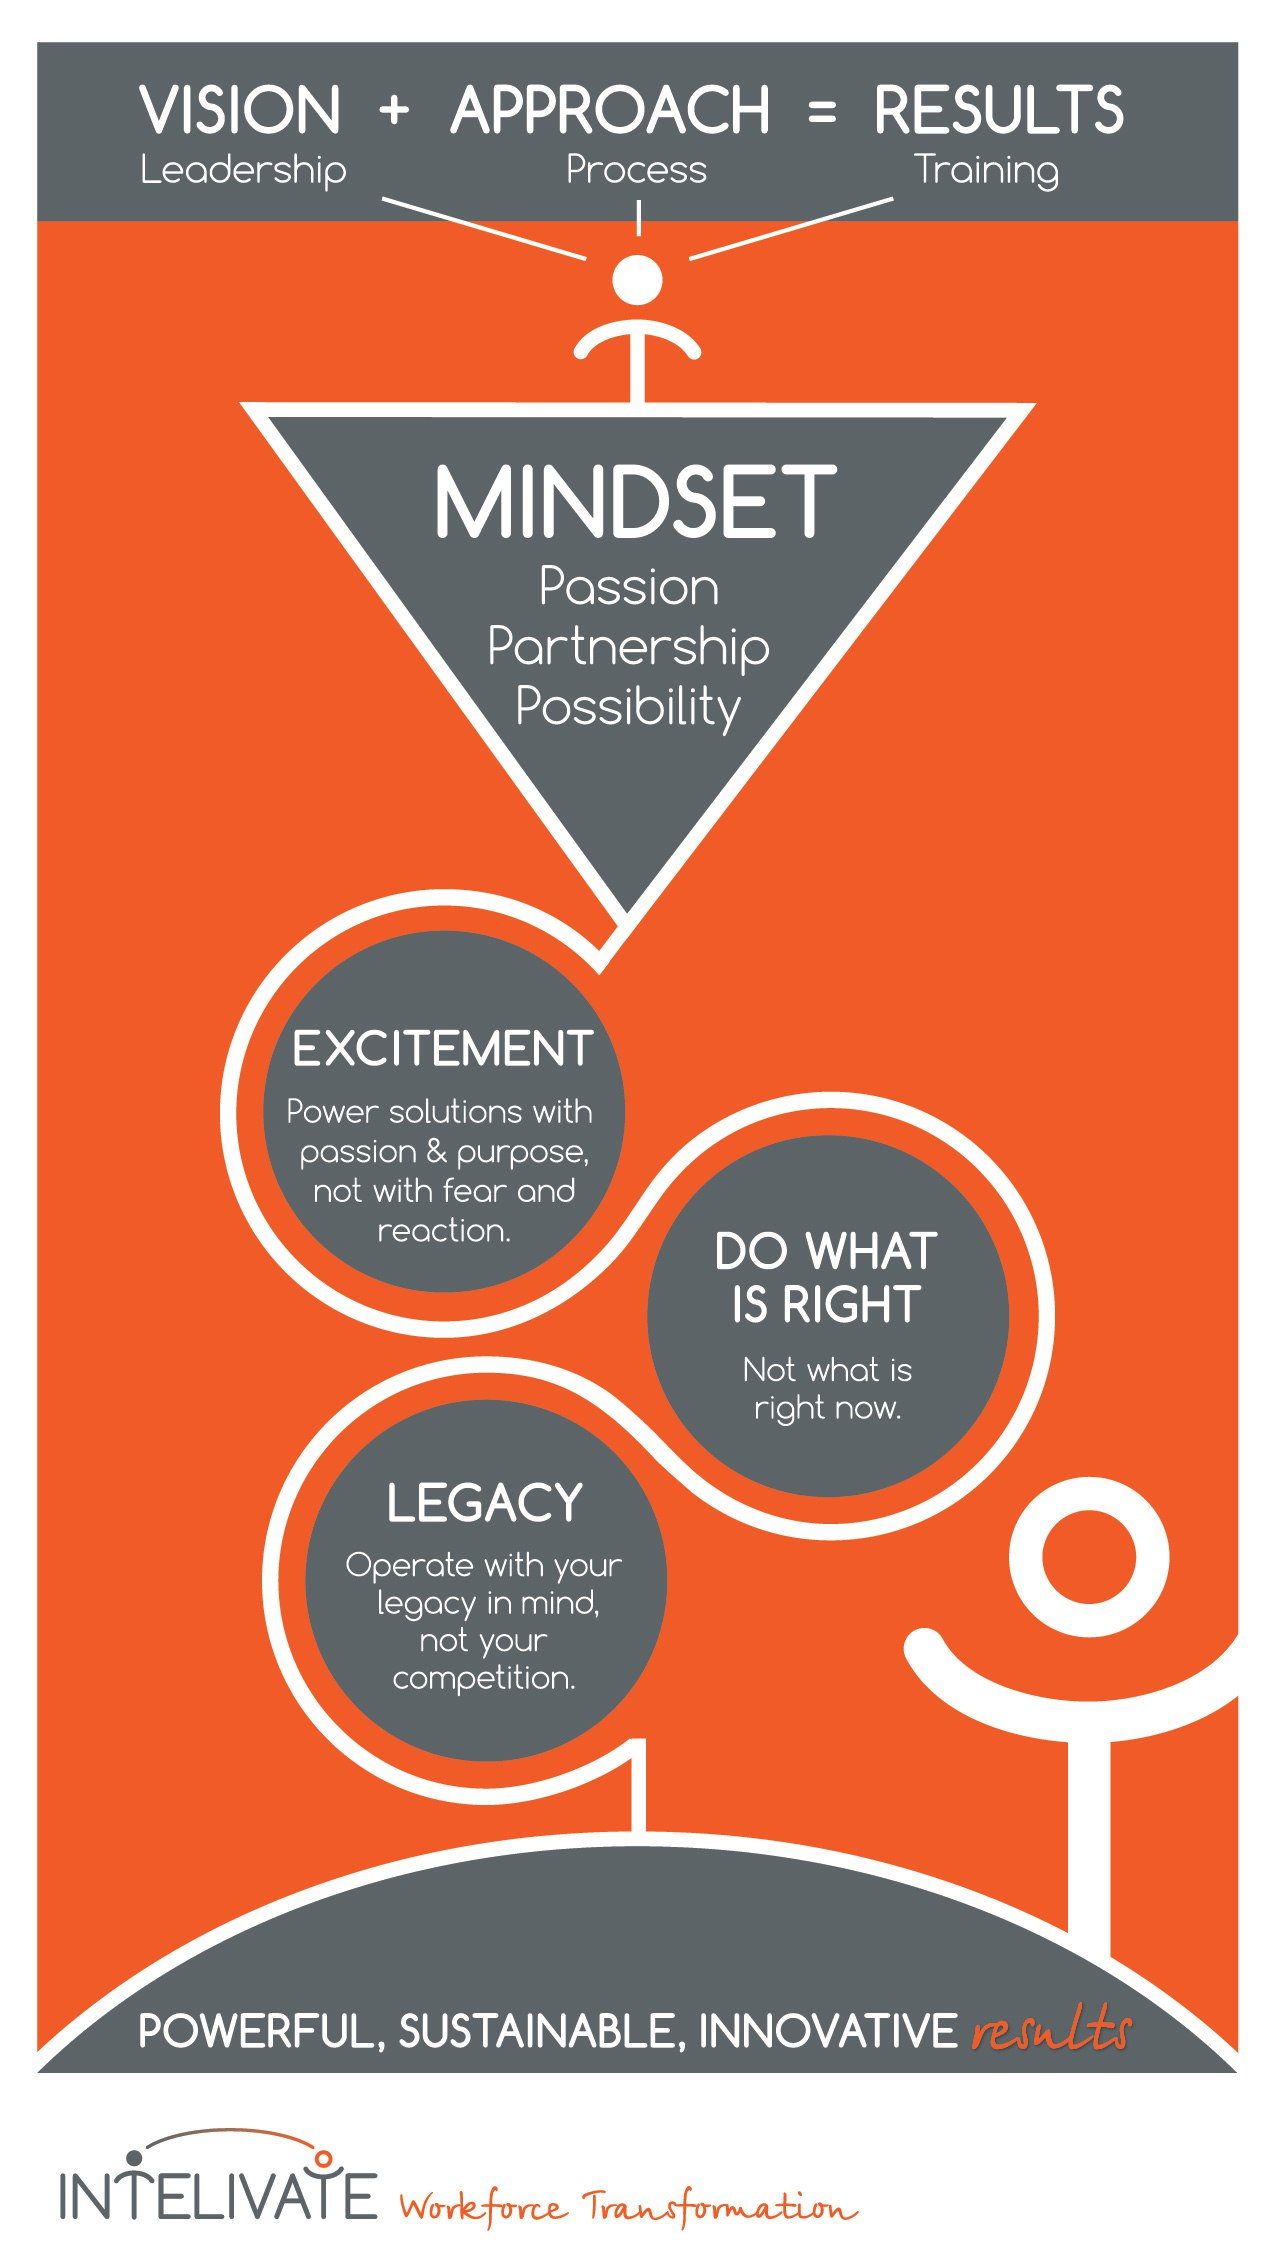 Intelivate Mindset Approach Result Passion Project to Training and Consulting